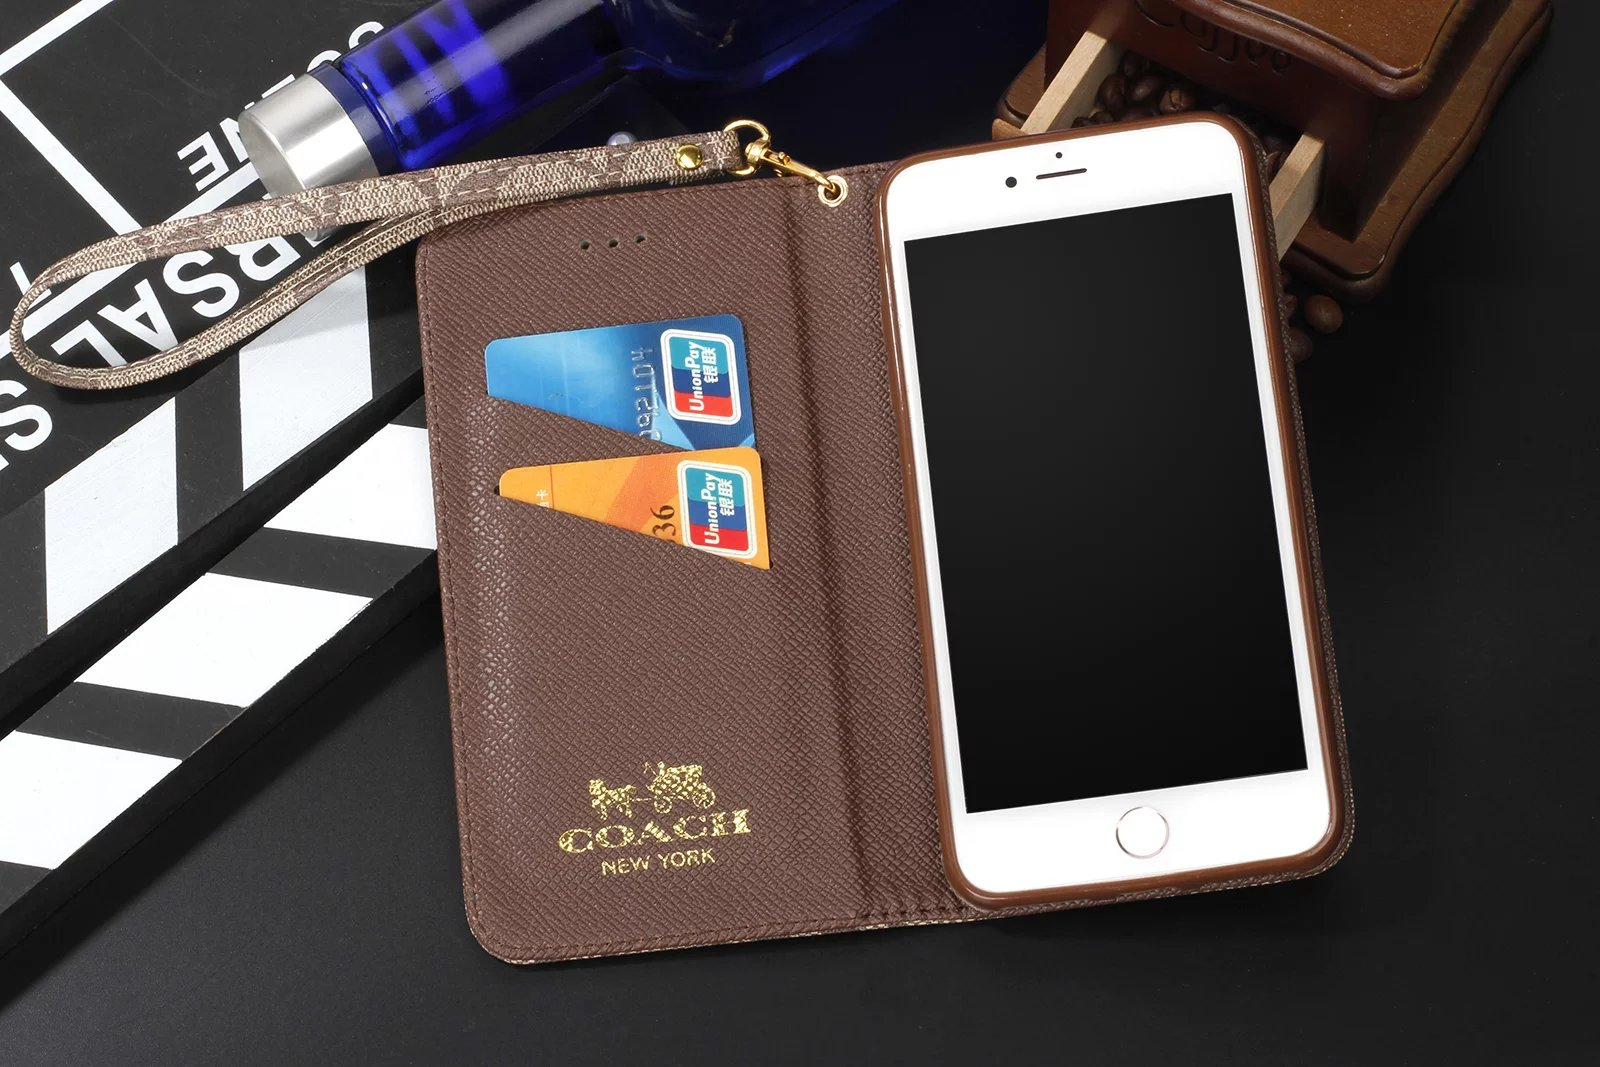 iphone 8 covers for sale iphone 8 covers and cases coach iphone 8 case mophie power pack plus recommended iphone 8 cases iphone battery case mophie branded iphone cases mophie juice pack 8 phone cover maker